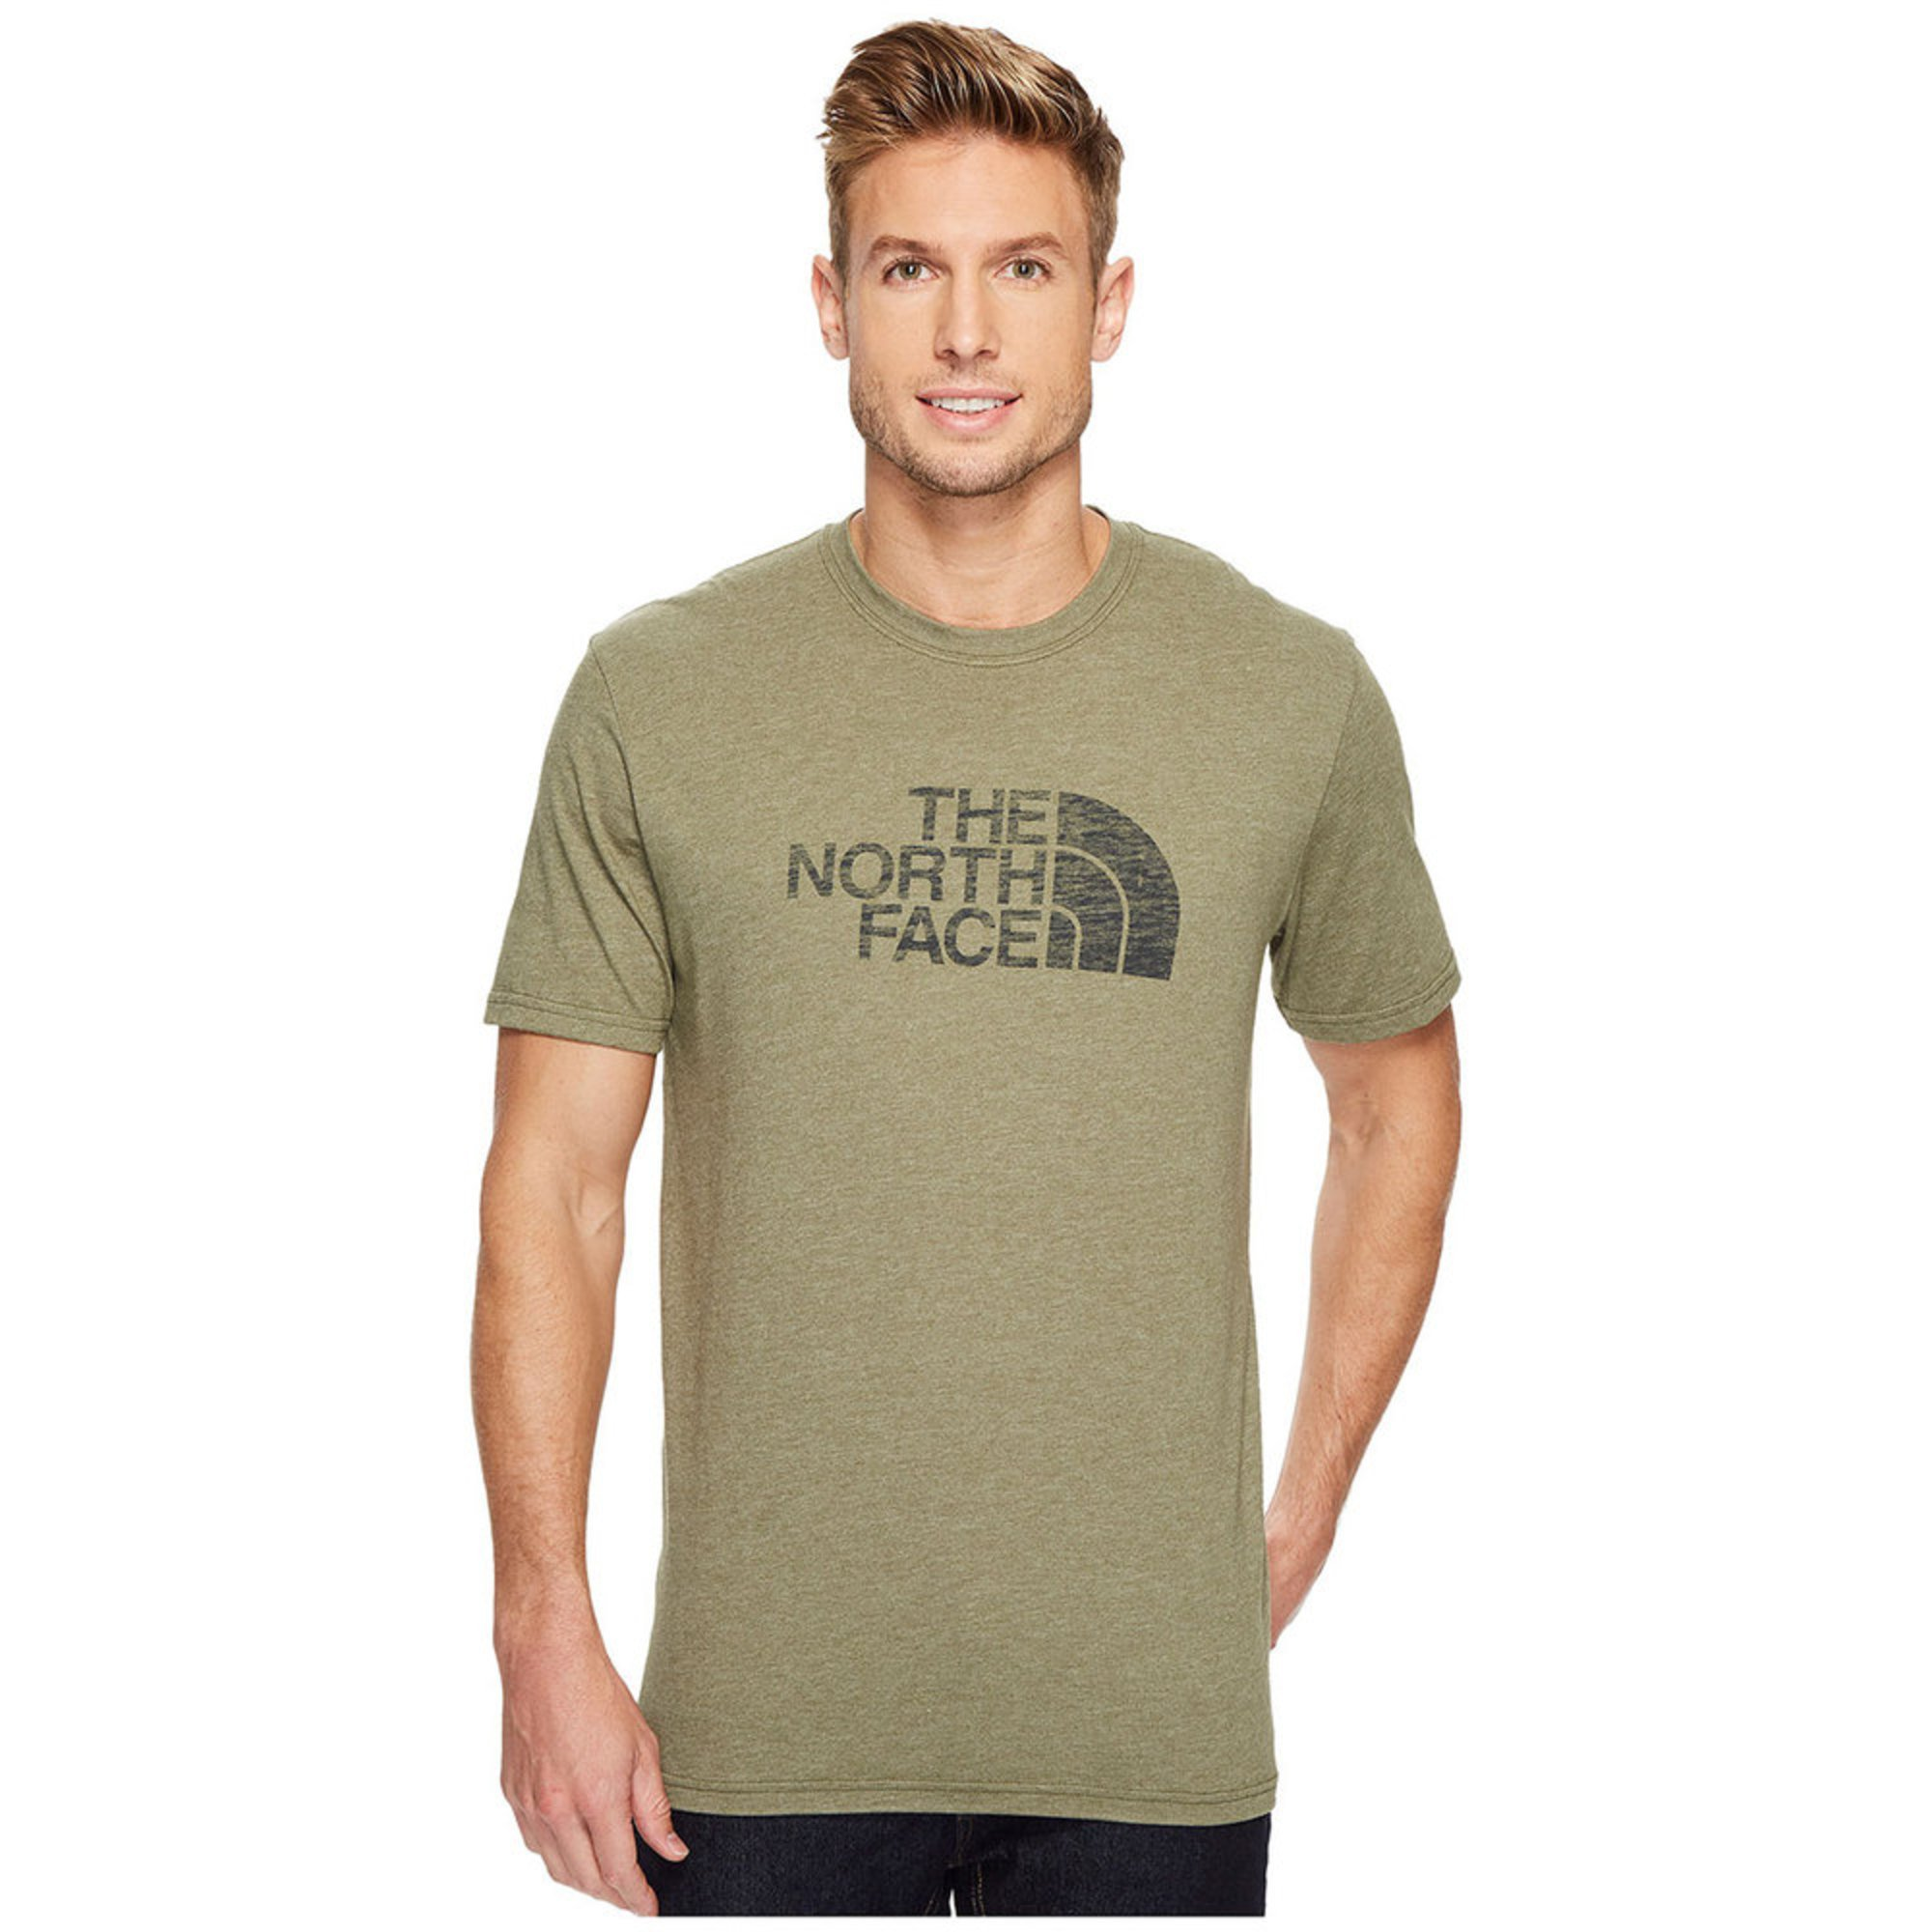 1ef32abf9 The North Face Men's Short Sleeve Half Dome Tee | Outdoor Tees ...